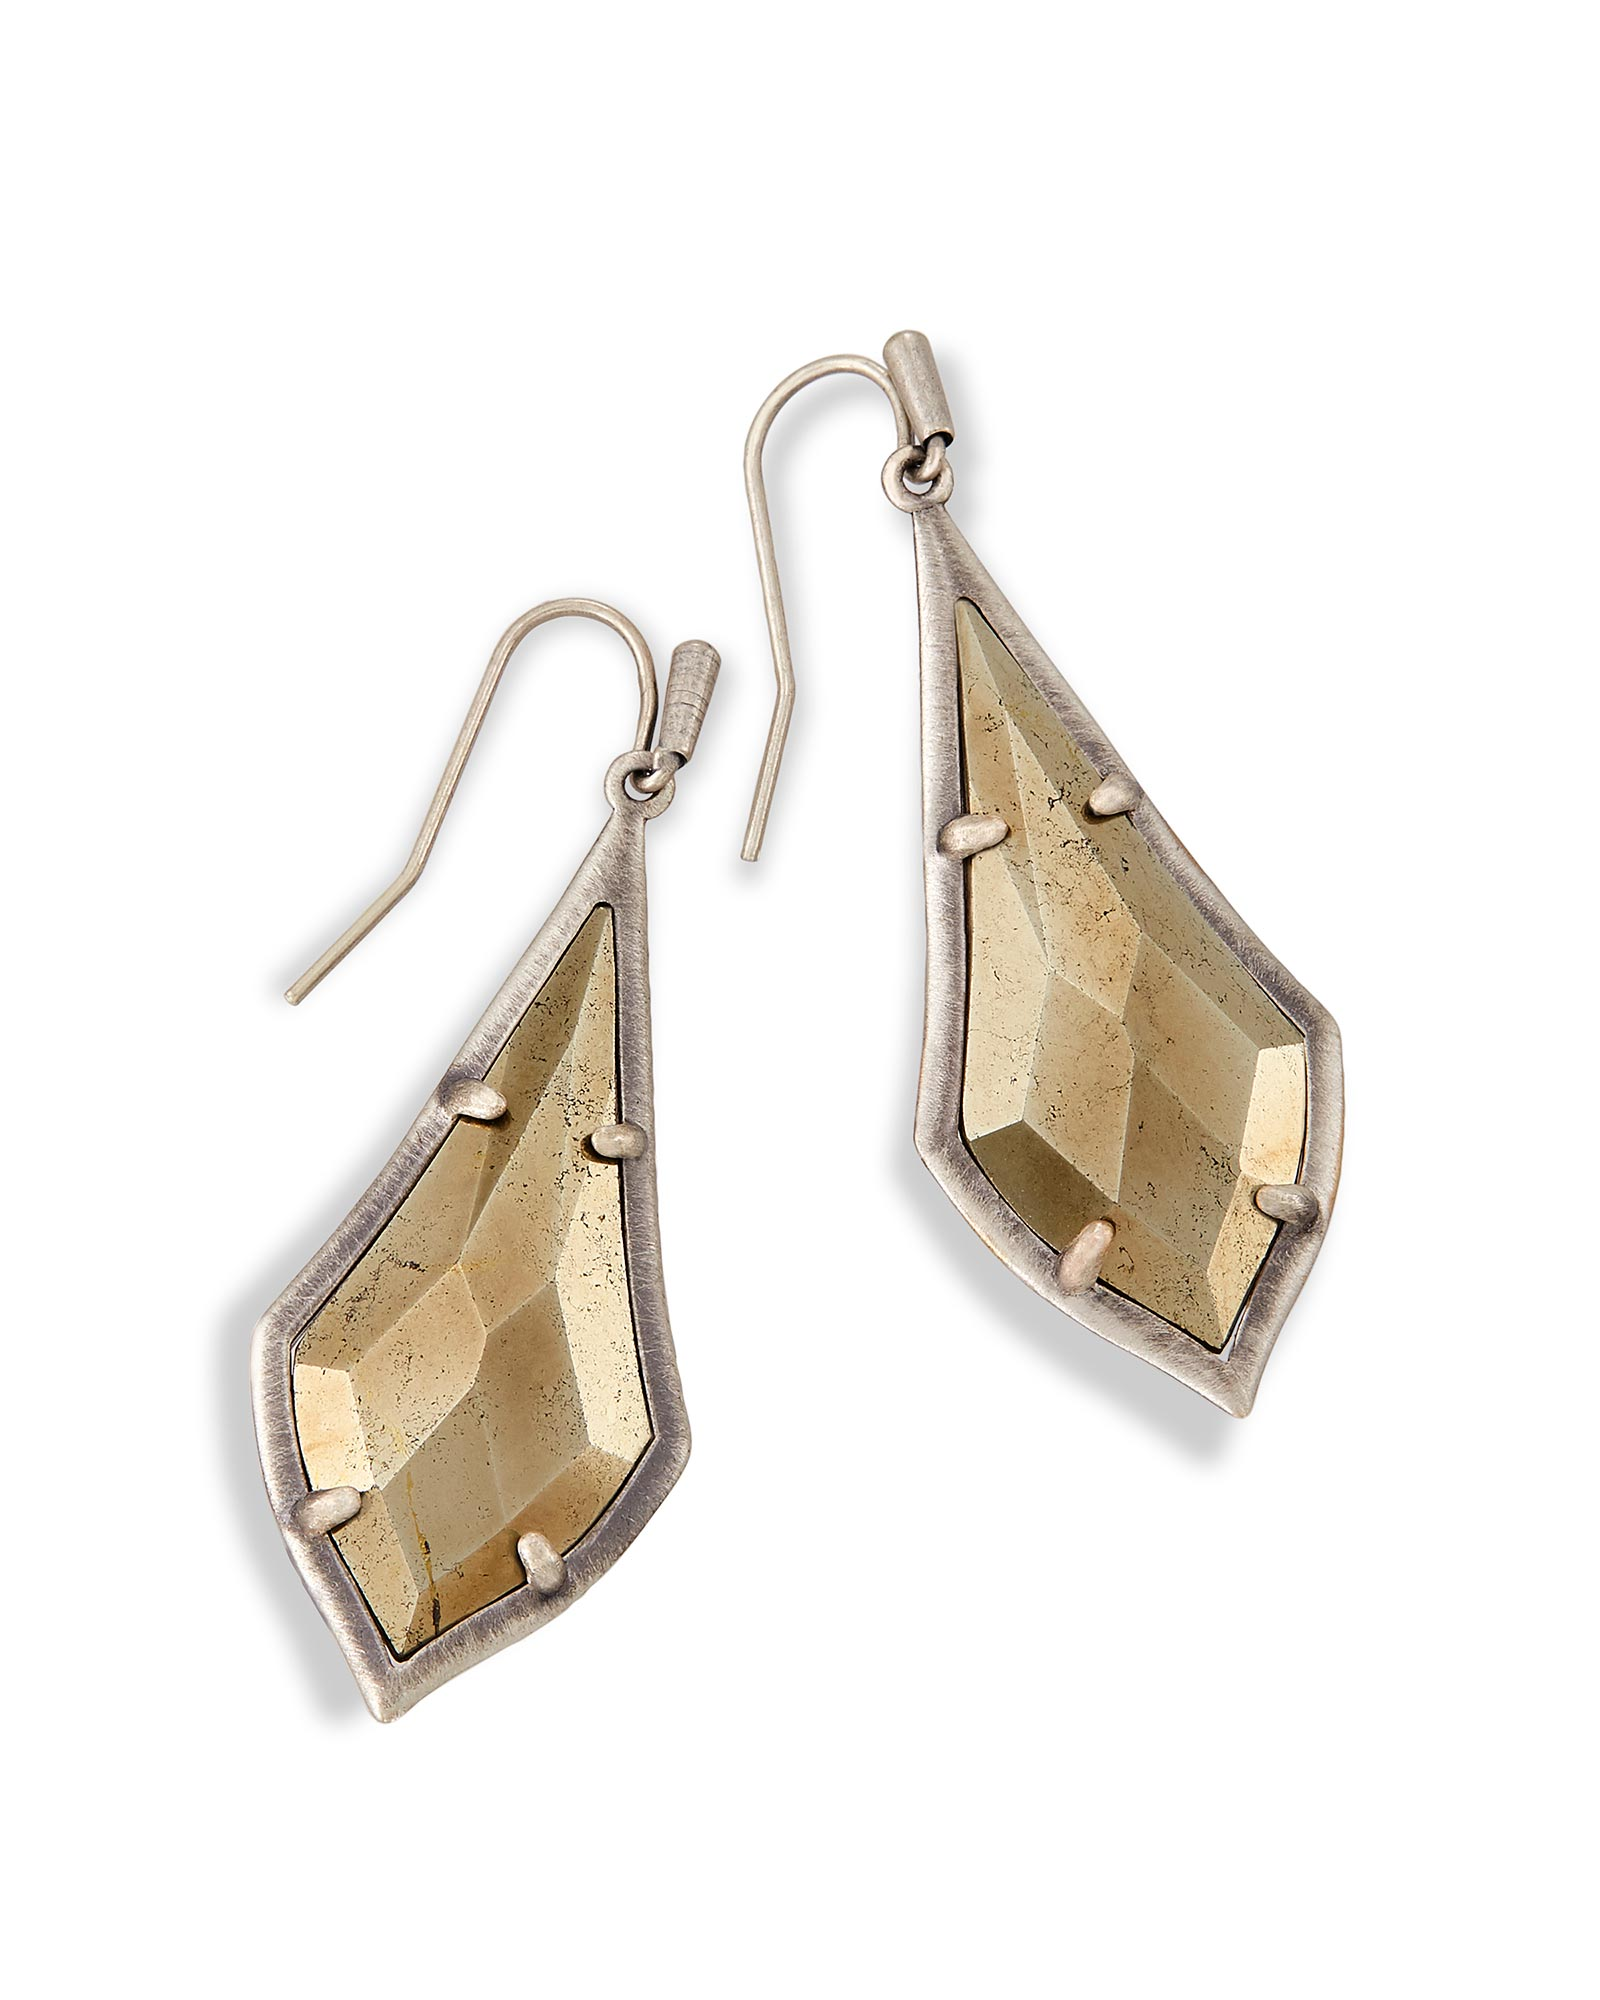 Olivia Drop Earrings in Pyrite